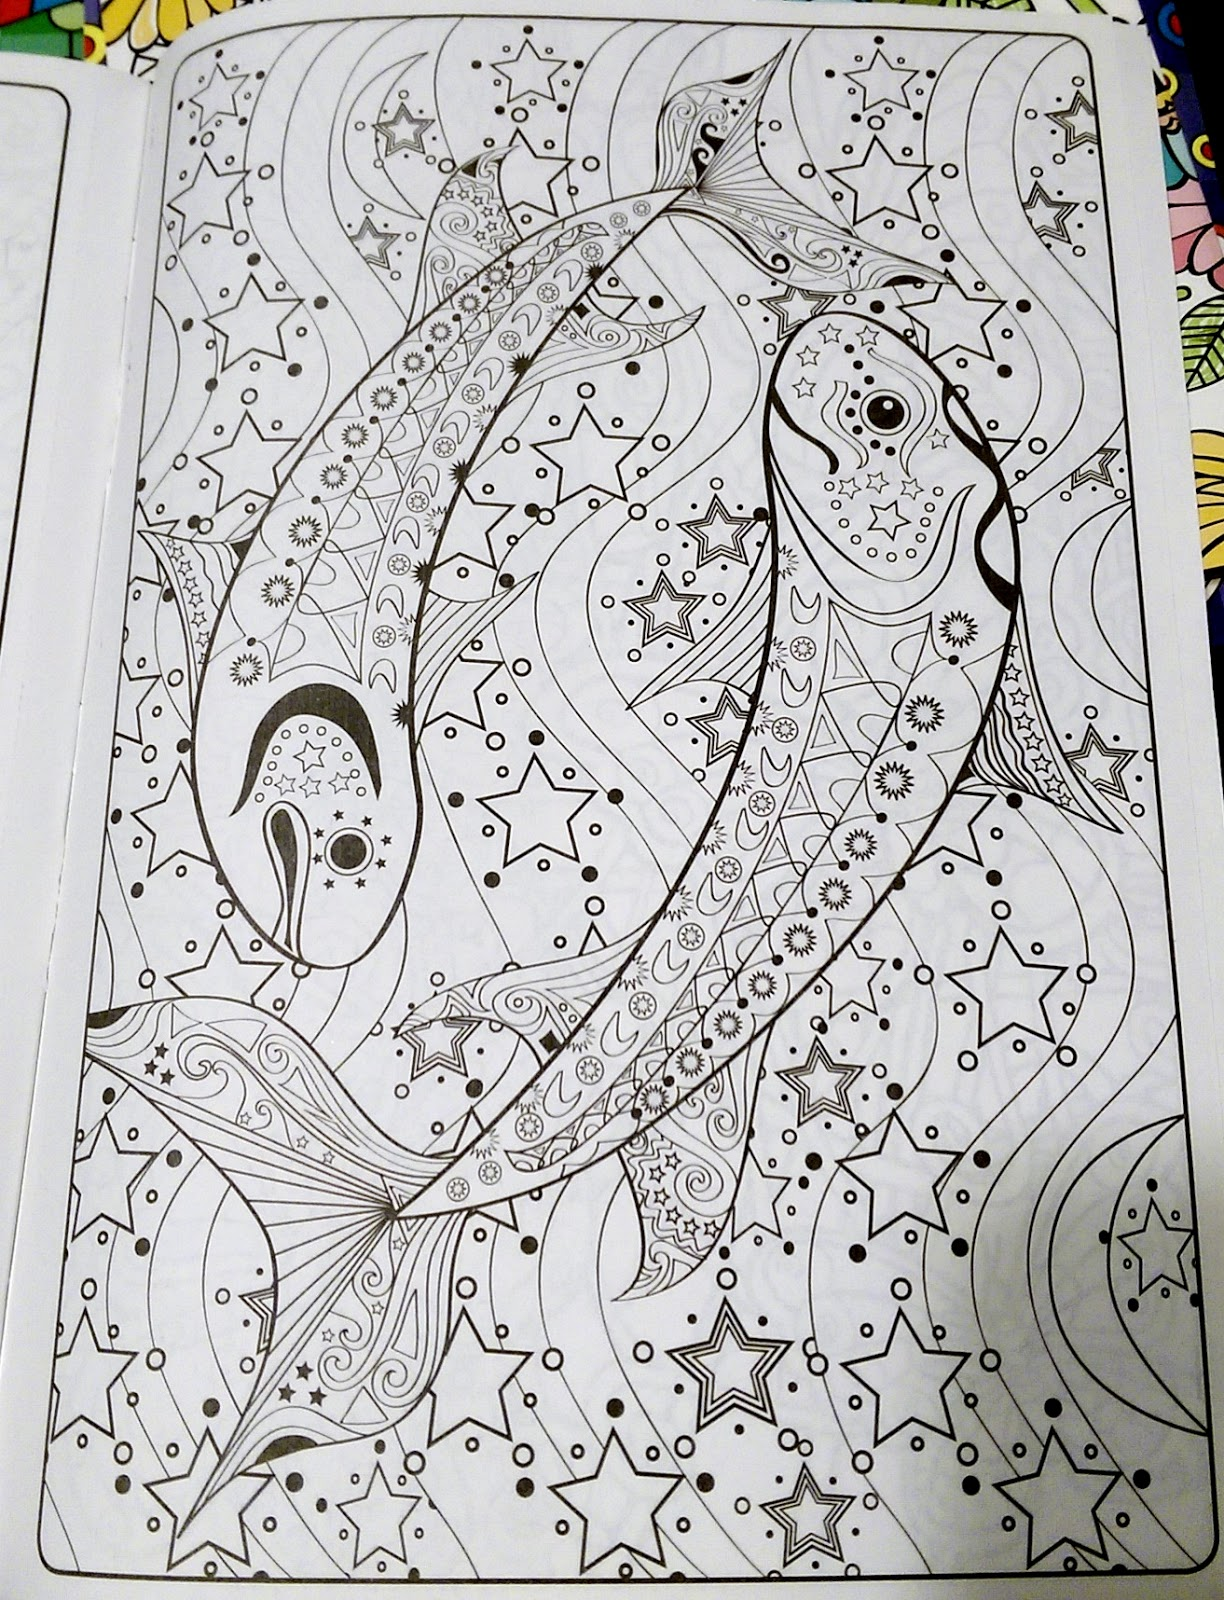 Piscies Ying Yang Design Fish Astrology Stars Astronomy Color Book Page Adult Fun Relaxing ASMR